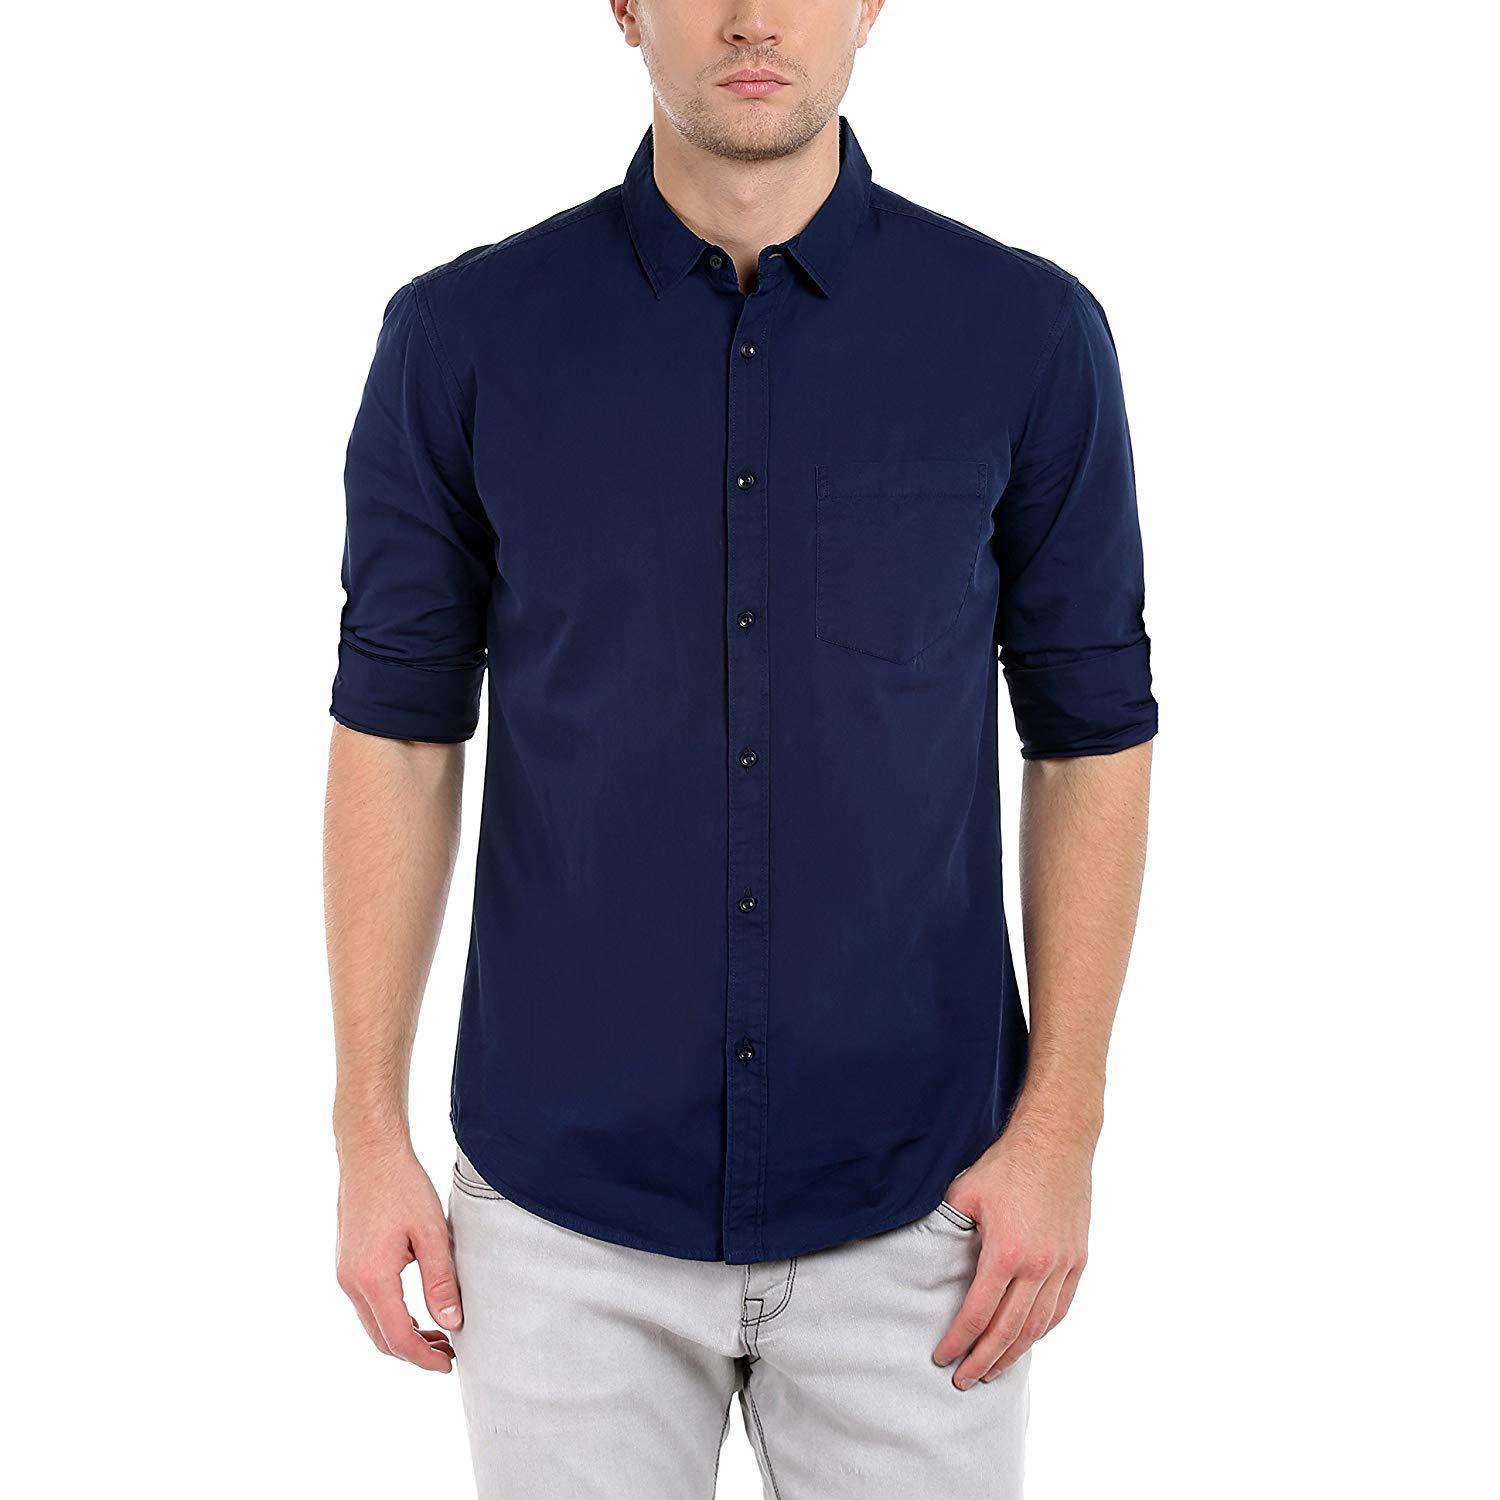 e7fdf34ab0ec Shirts For Men - Buy Men s Shirts In Bangladesh Online   Daraz.com.bd